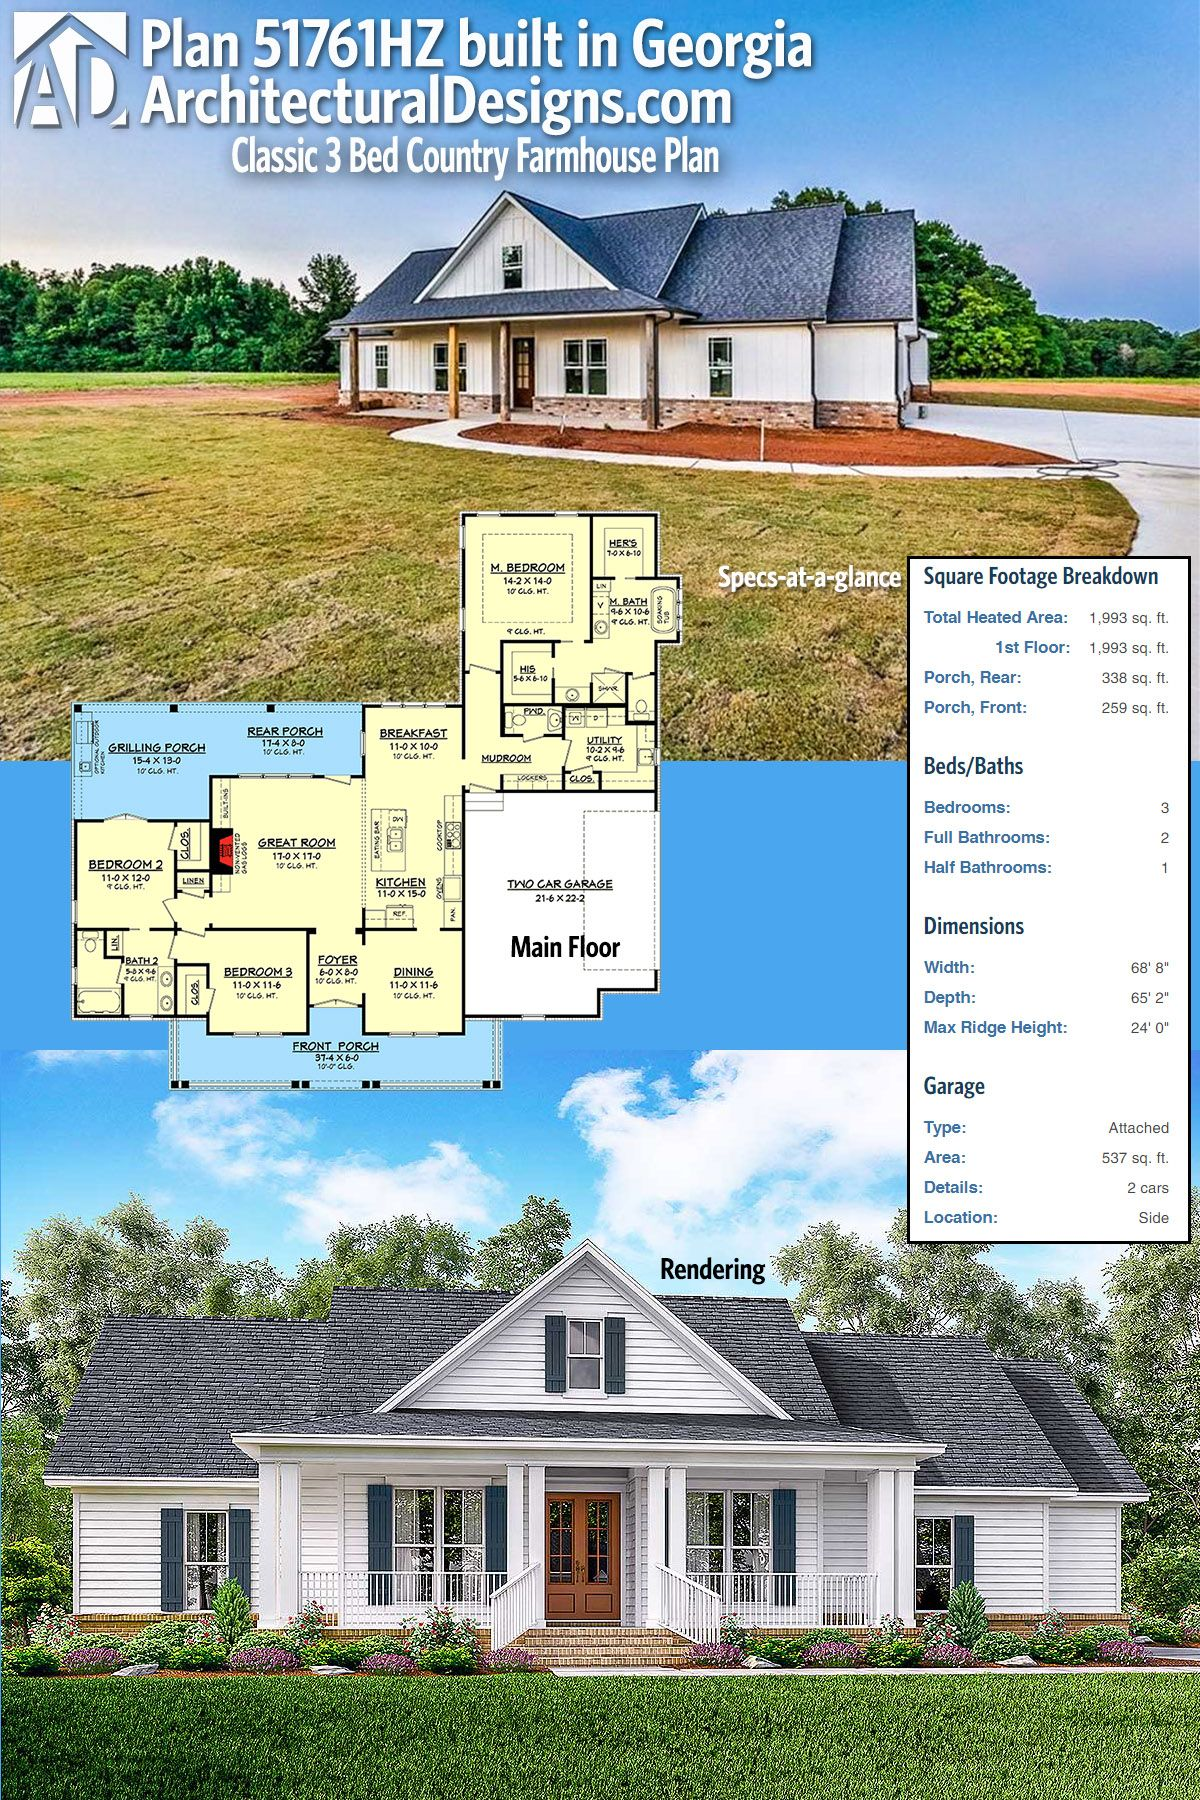 Ordinaire Our Client Built House Plan 51761HZ In Georgia On A Slab Foundation To  Spec. We Think It Looks Great! Ready When You Are. Where Do YOU Want To  Build?